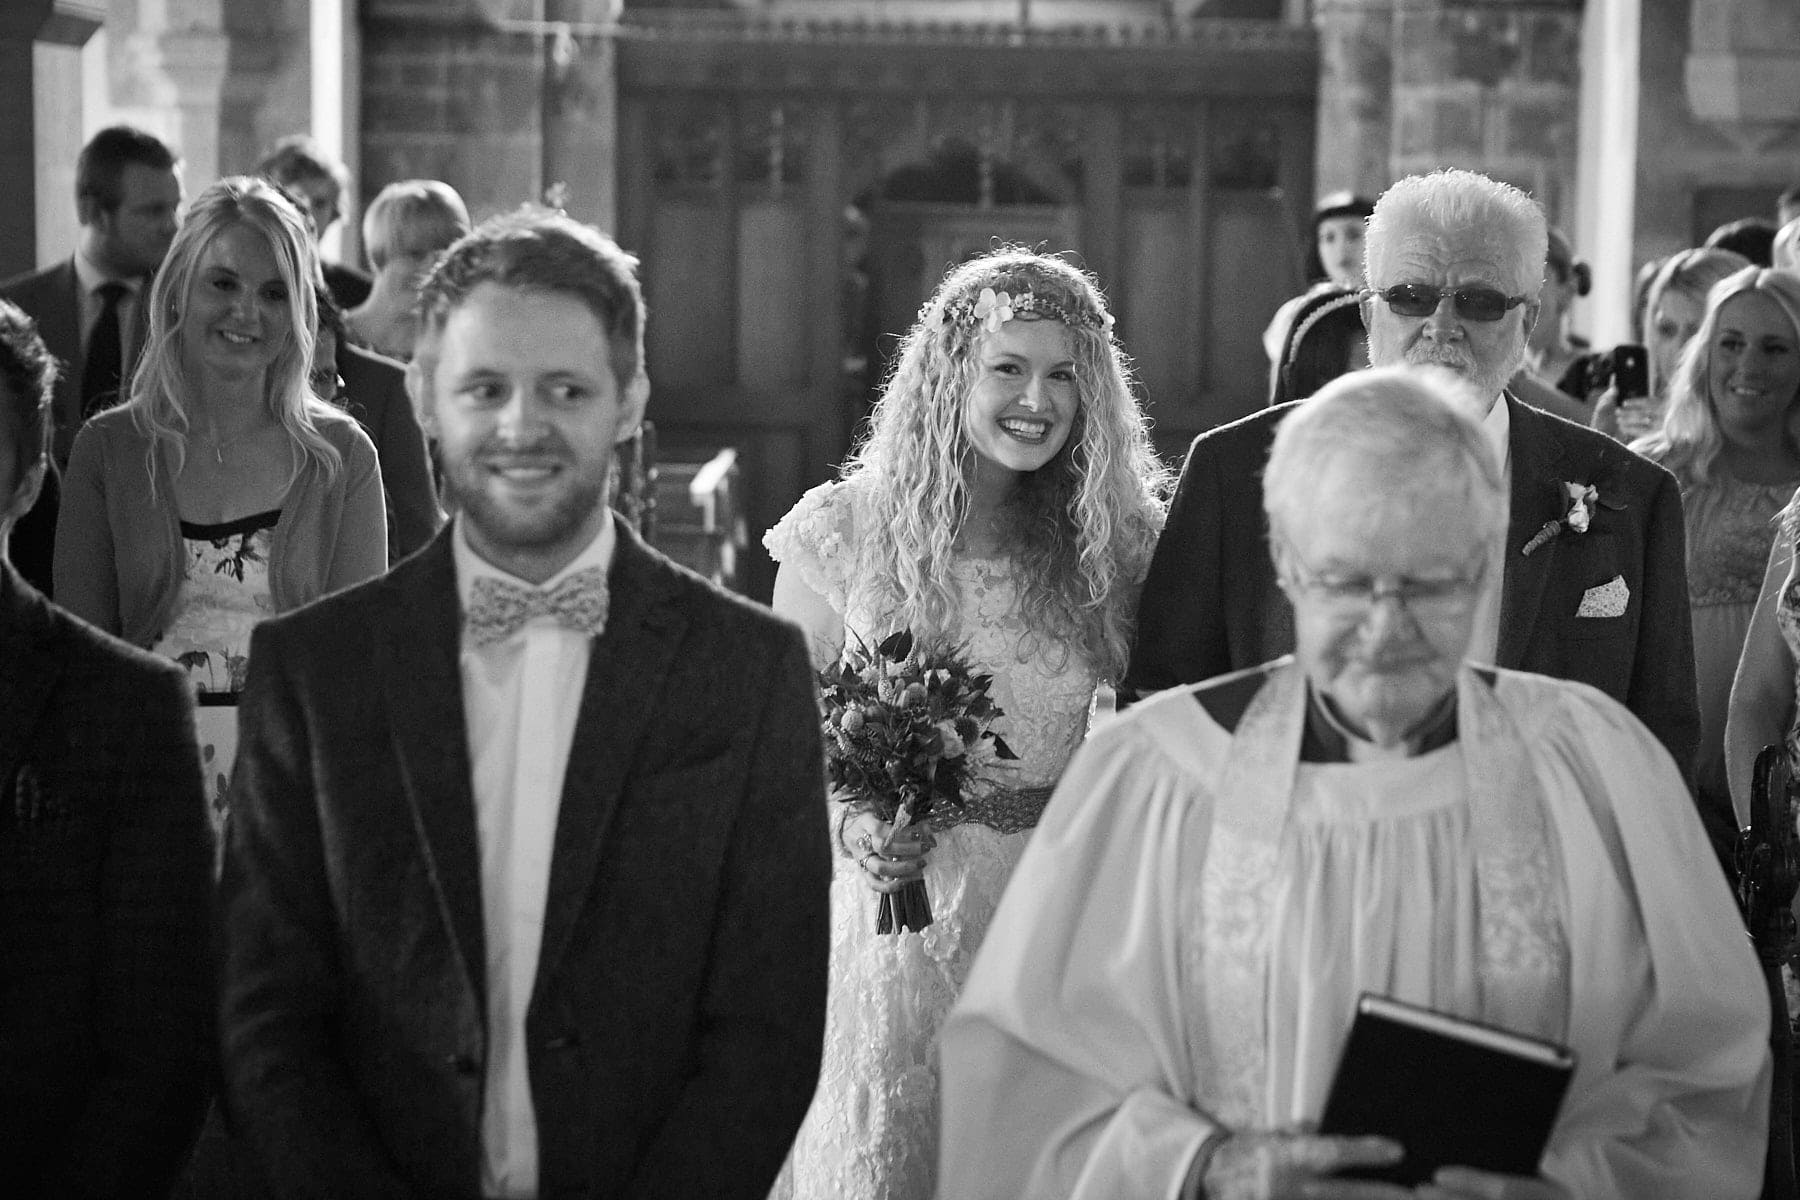 A nervous groom senses his wife to be approach the front of the church, she peaks to see if she can see his face.